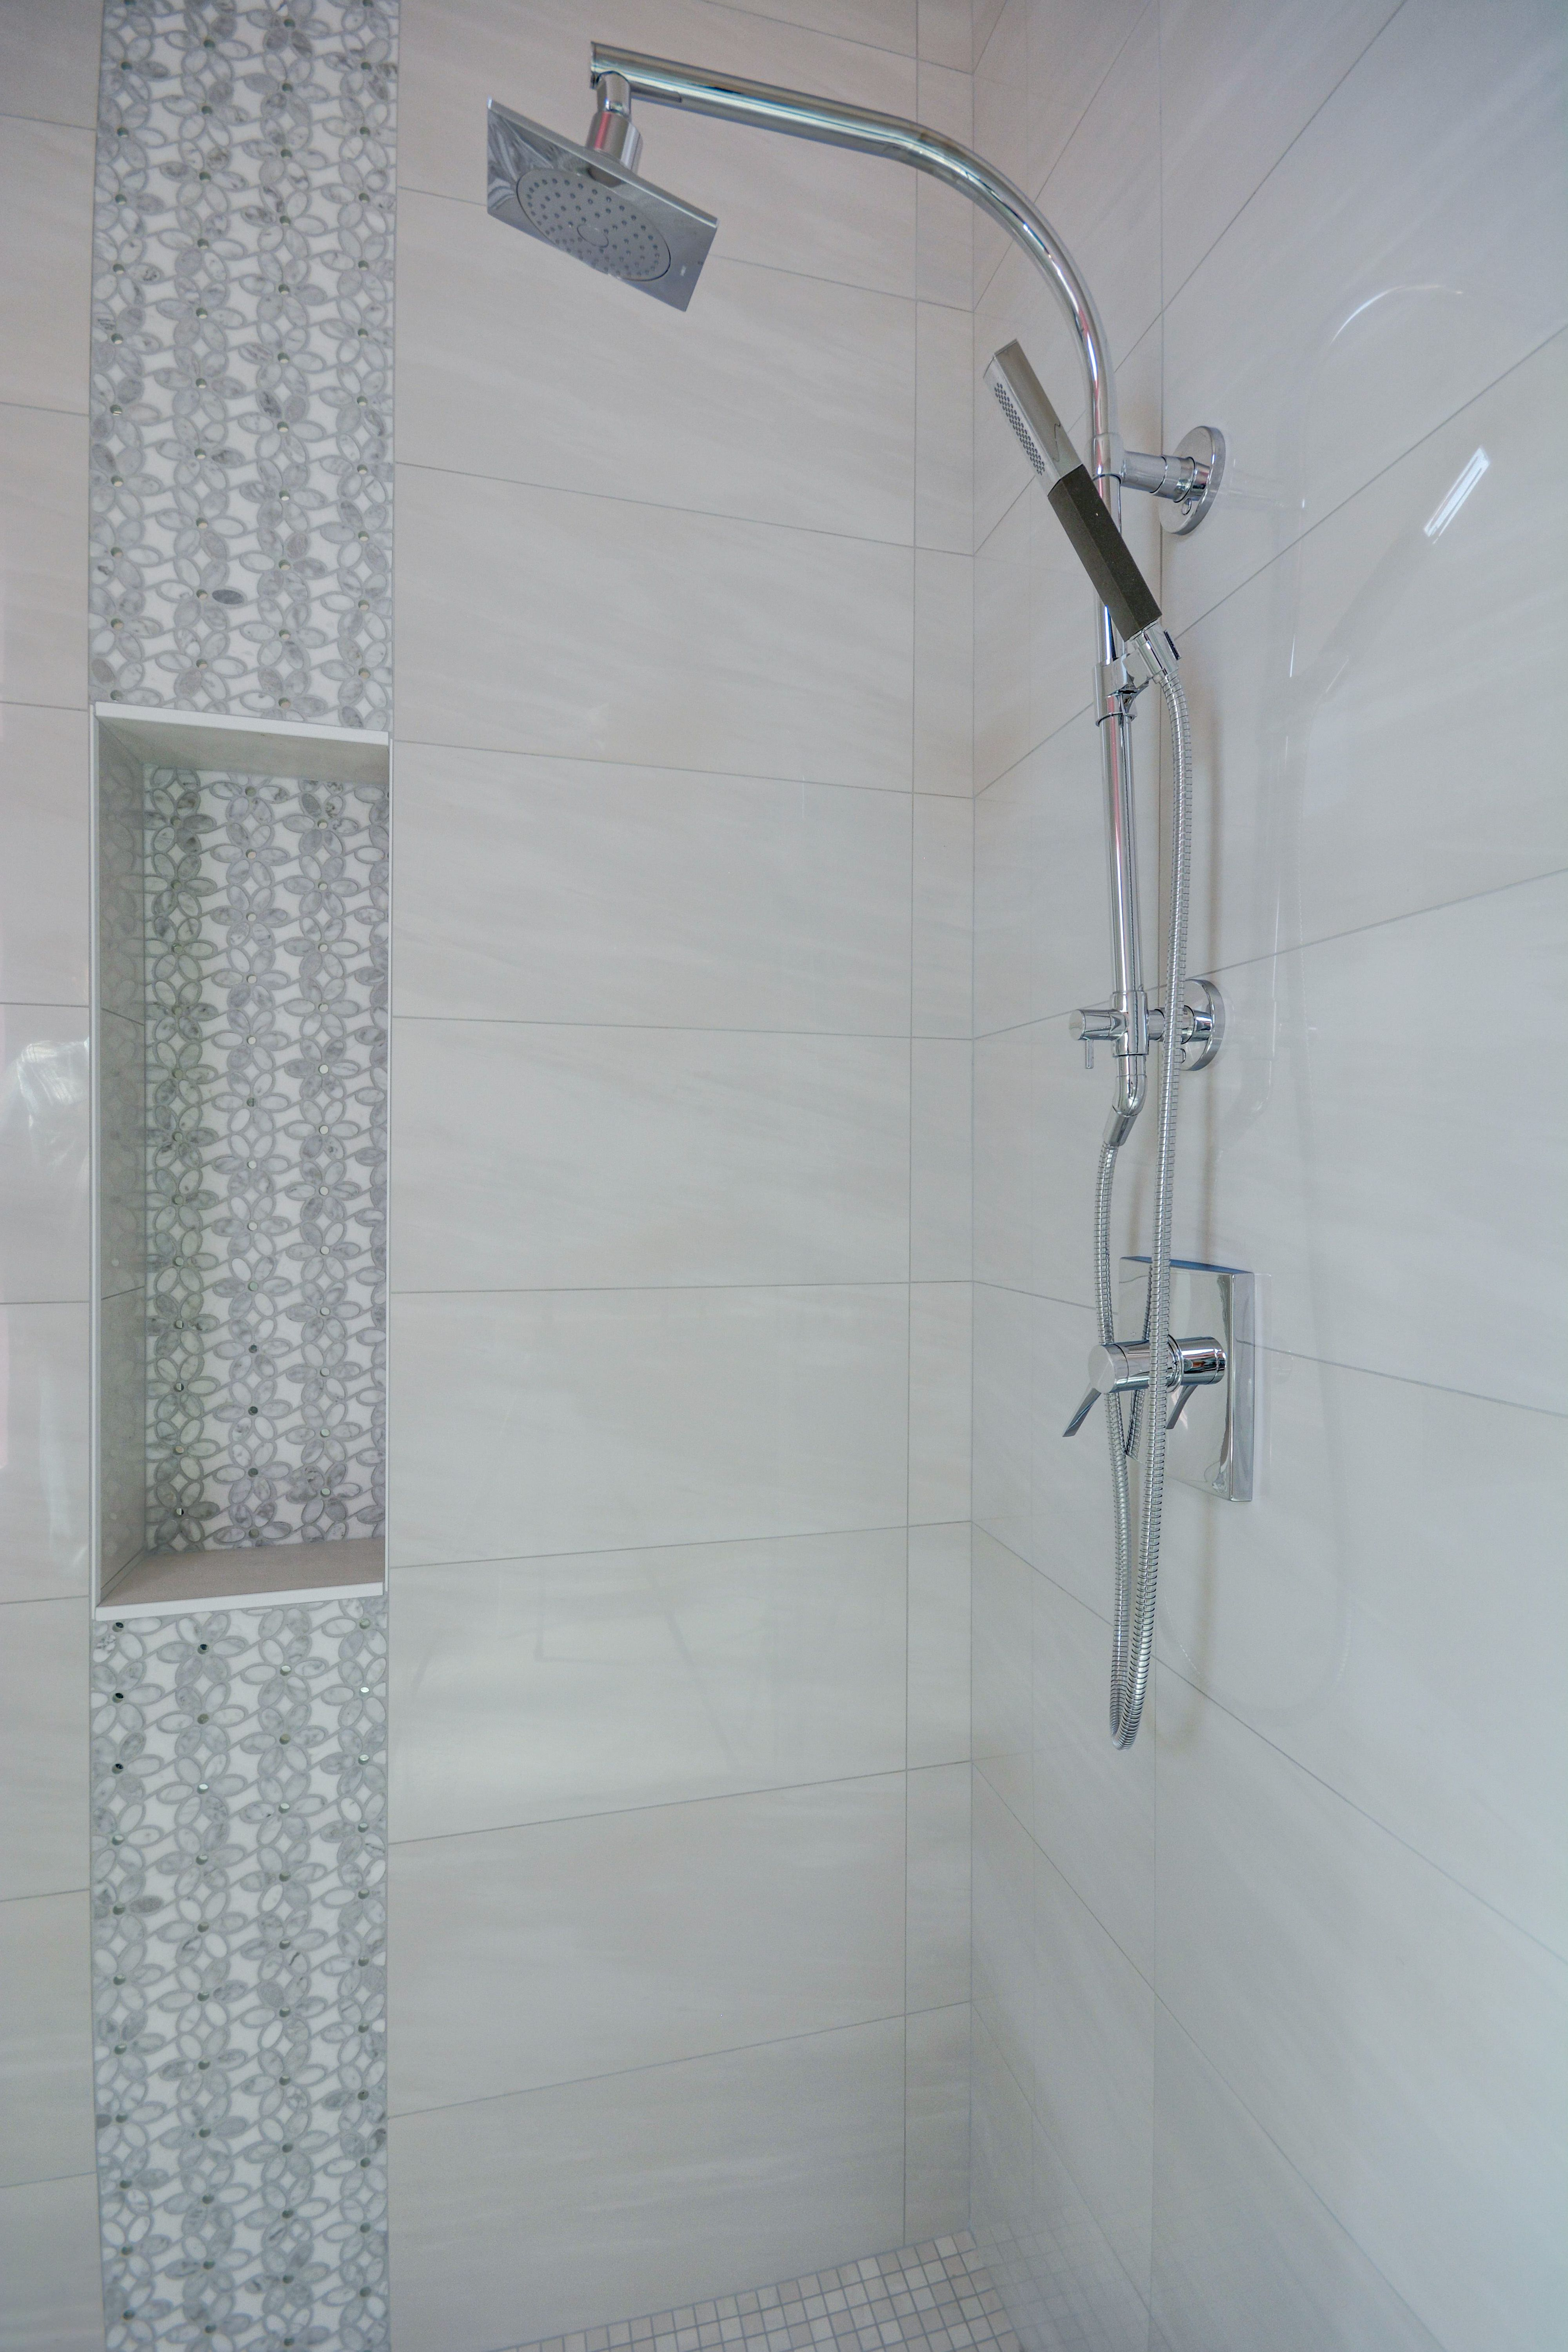 Bathroom Shower Design With White Marble Look Tile Shower Walls